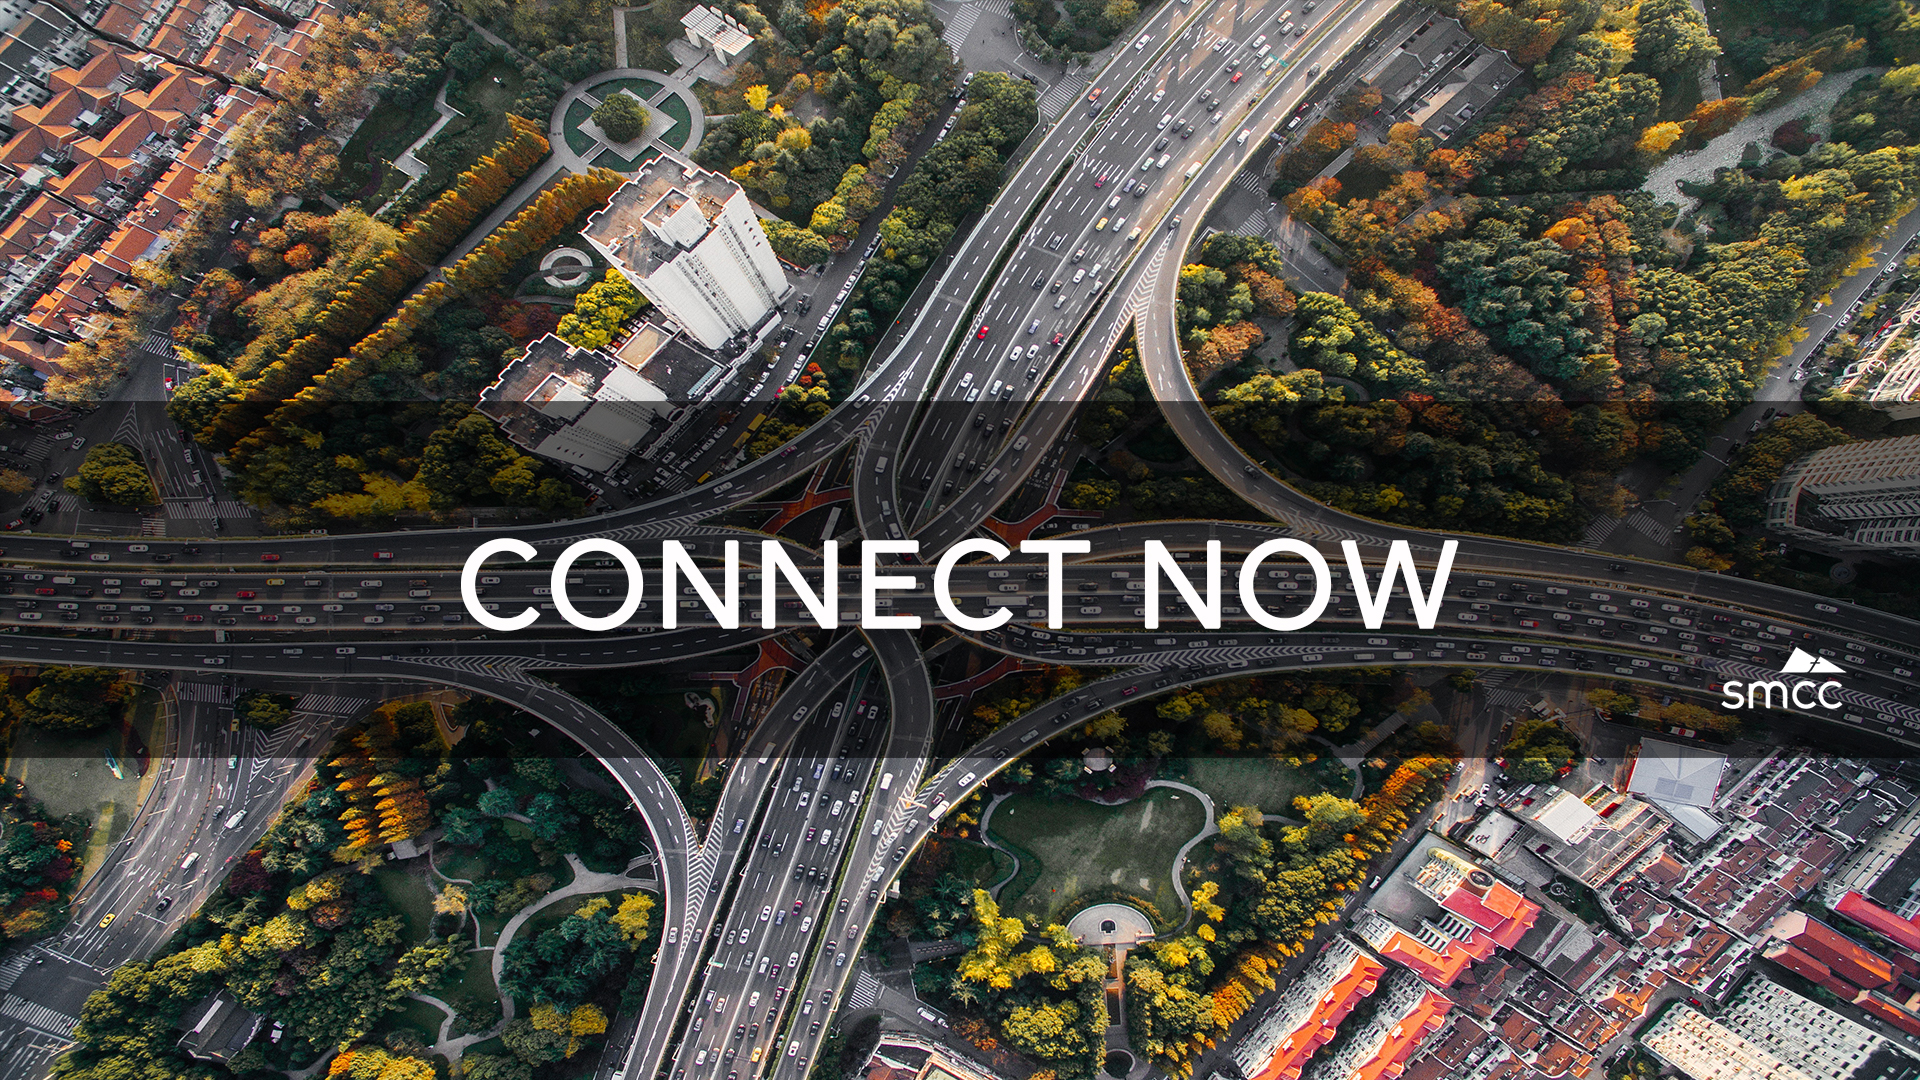 Connectnow.wide